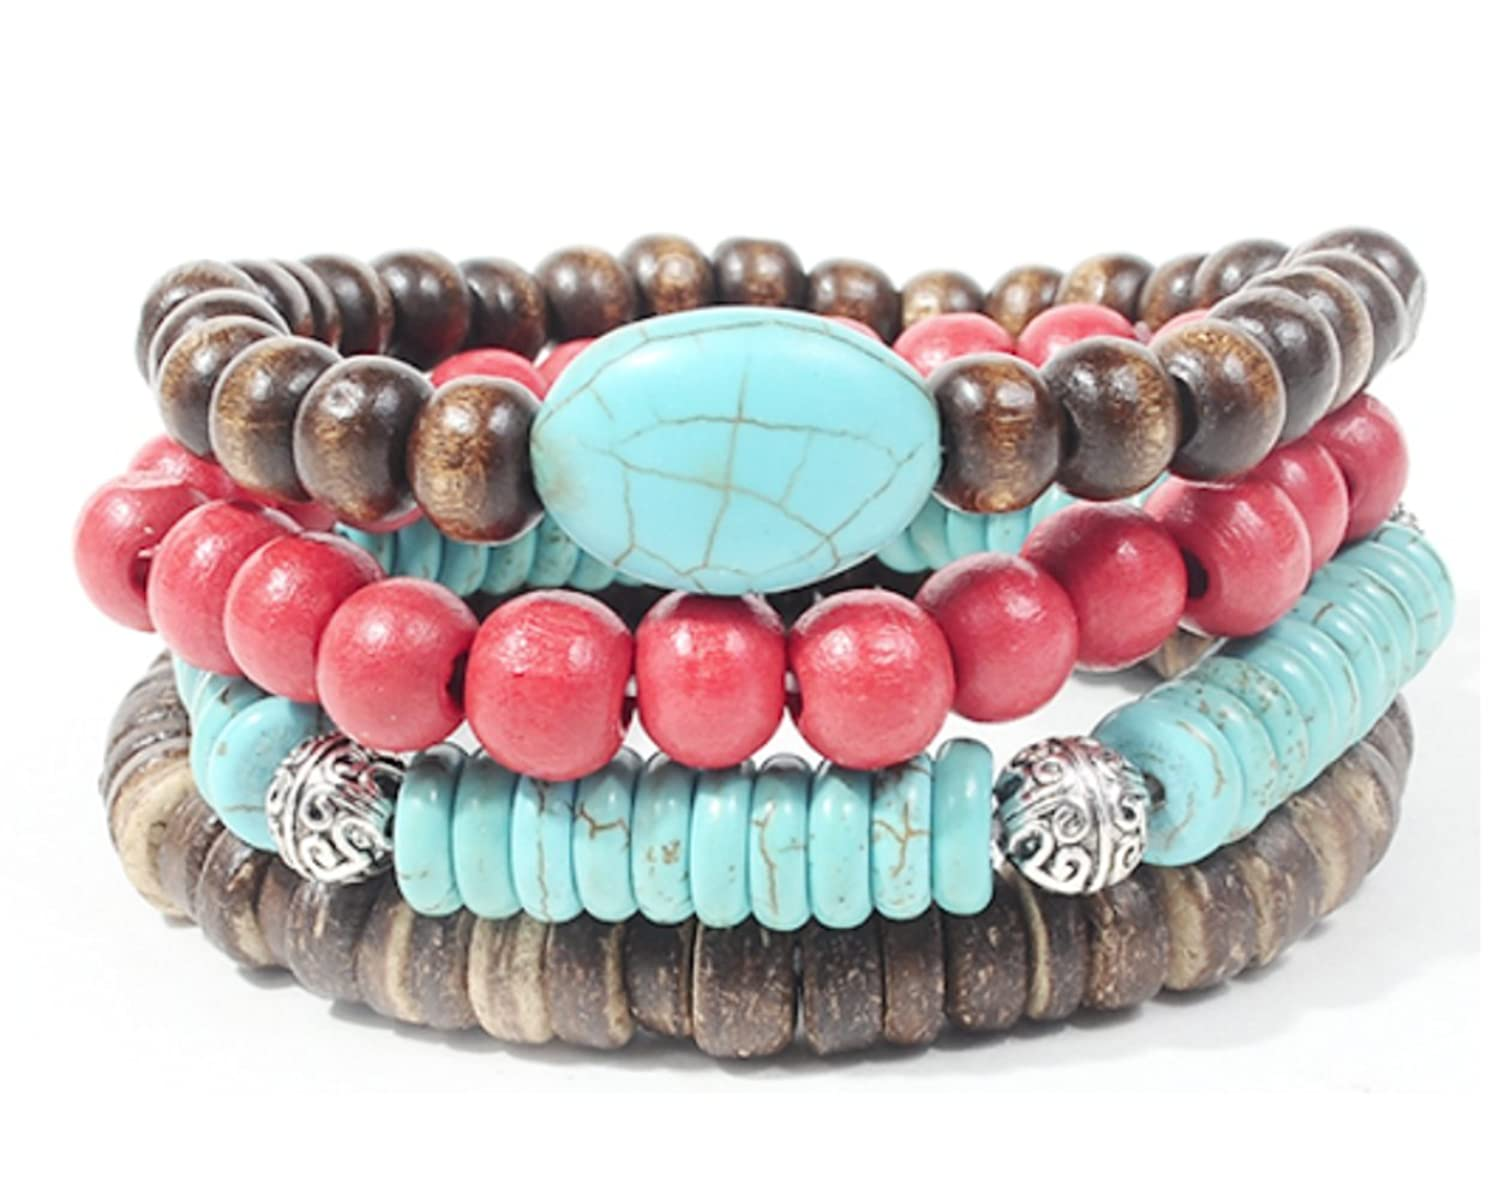 Turquoise and Cherry Beads Leather, and Hemp Boho Hippie Bracelet Sets with Colorful Gift Bag